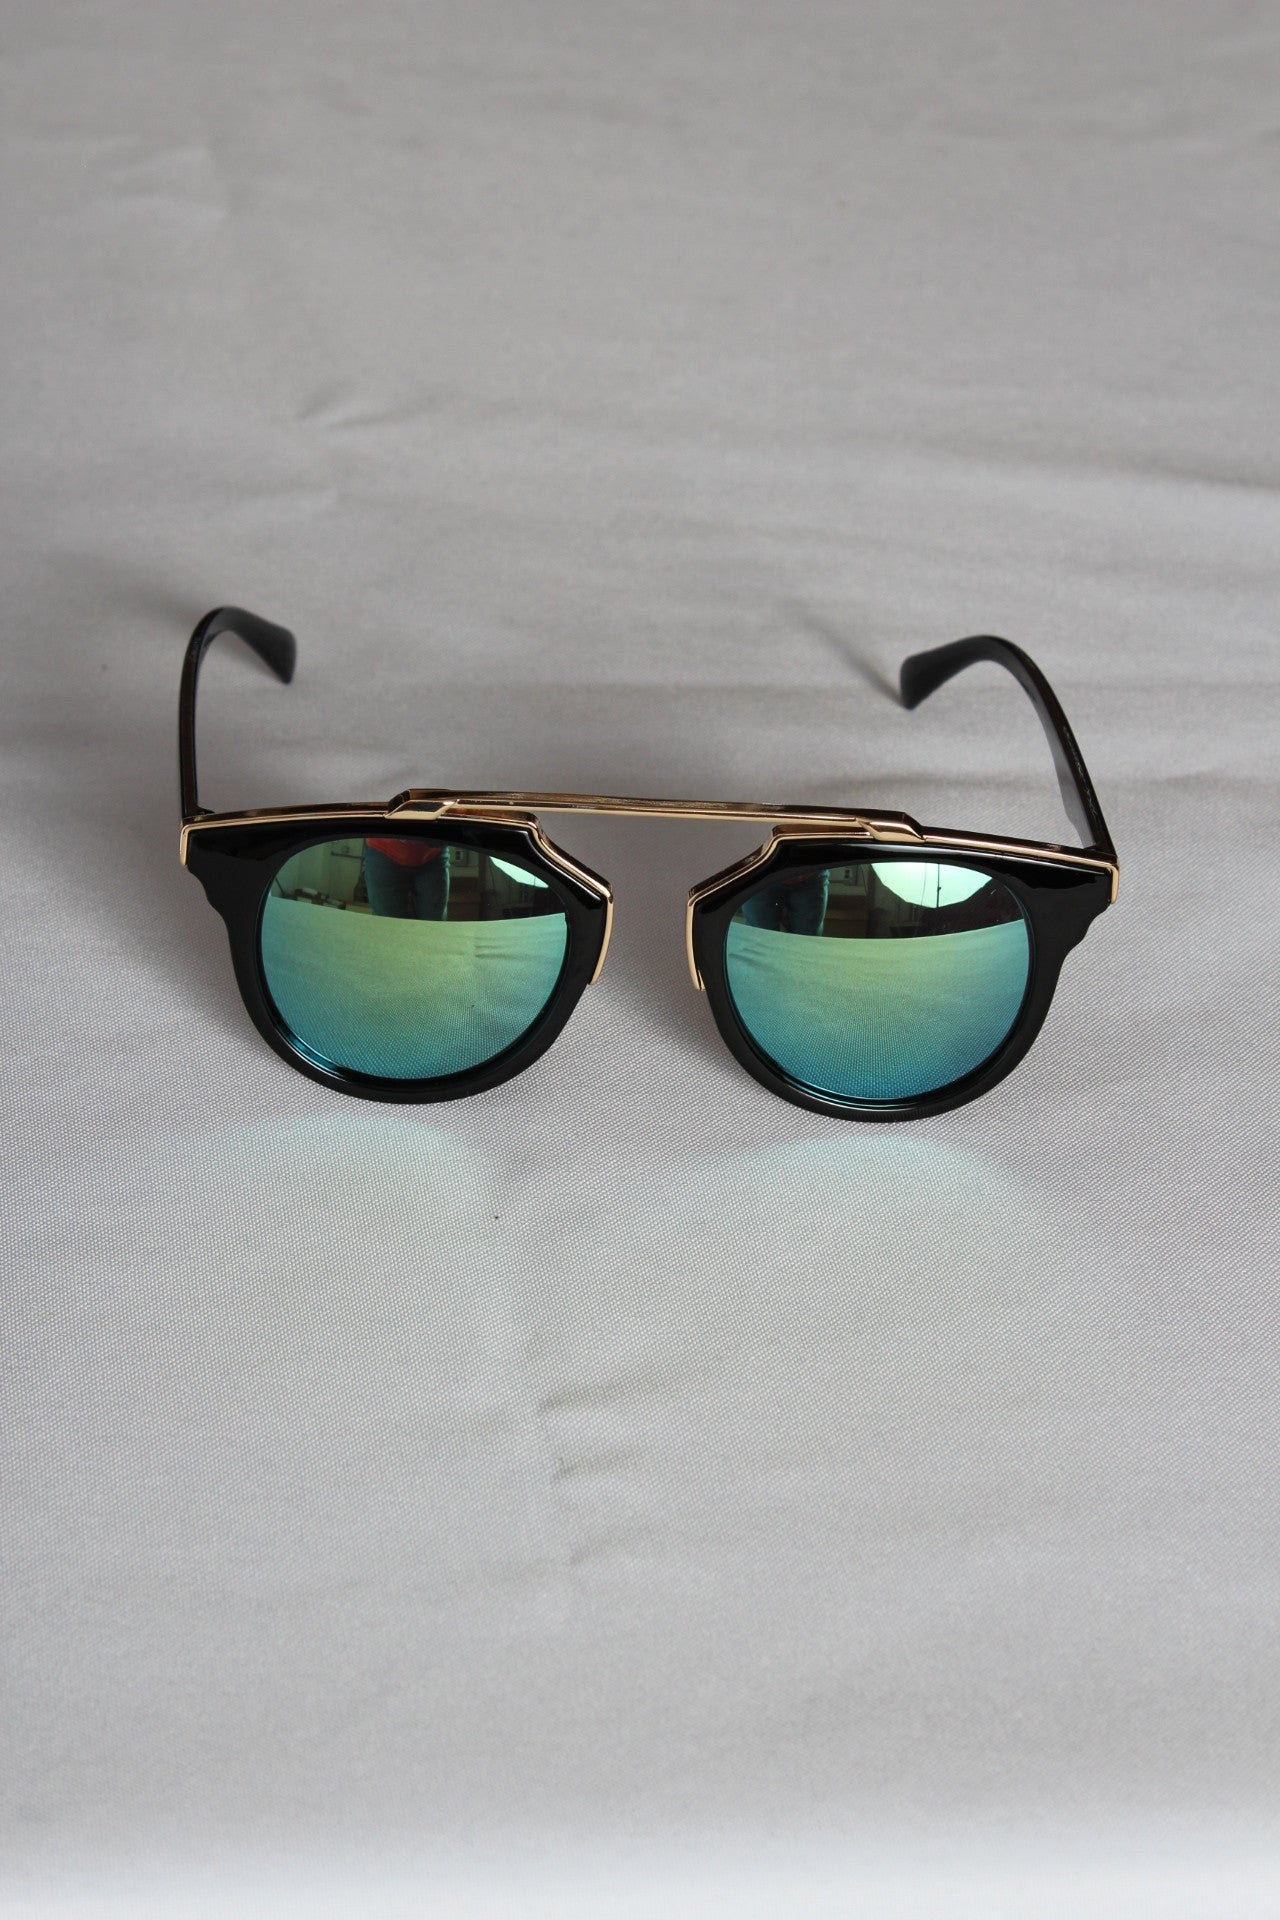 Plus Size Clothing for Women - Mermaid Sunnies - Society+ - Society Plus - Buy Online Now! - 1